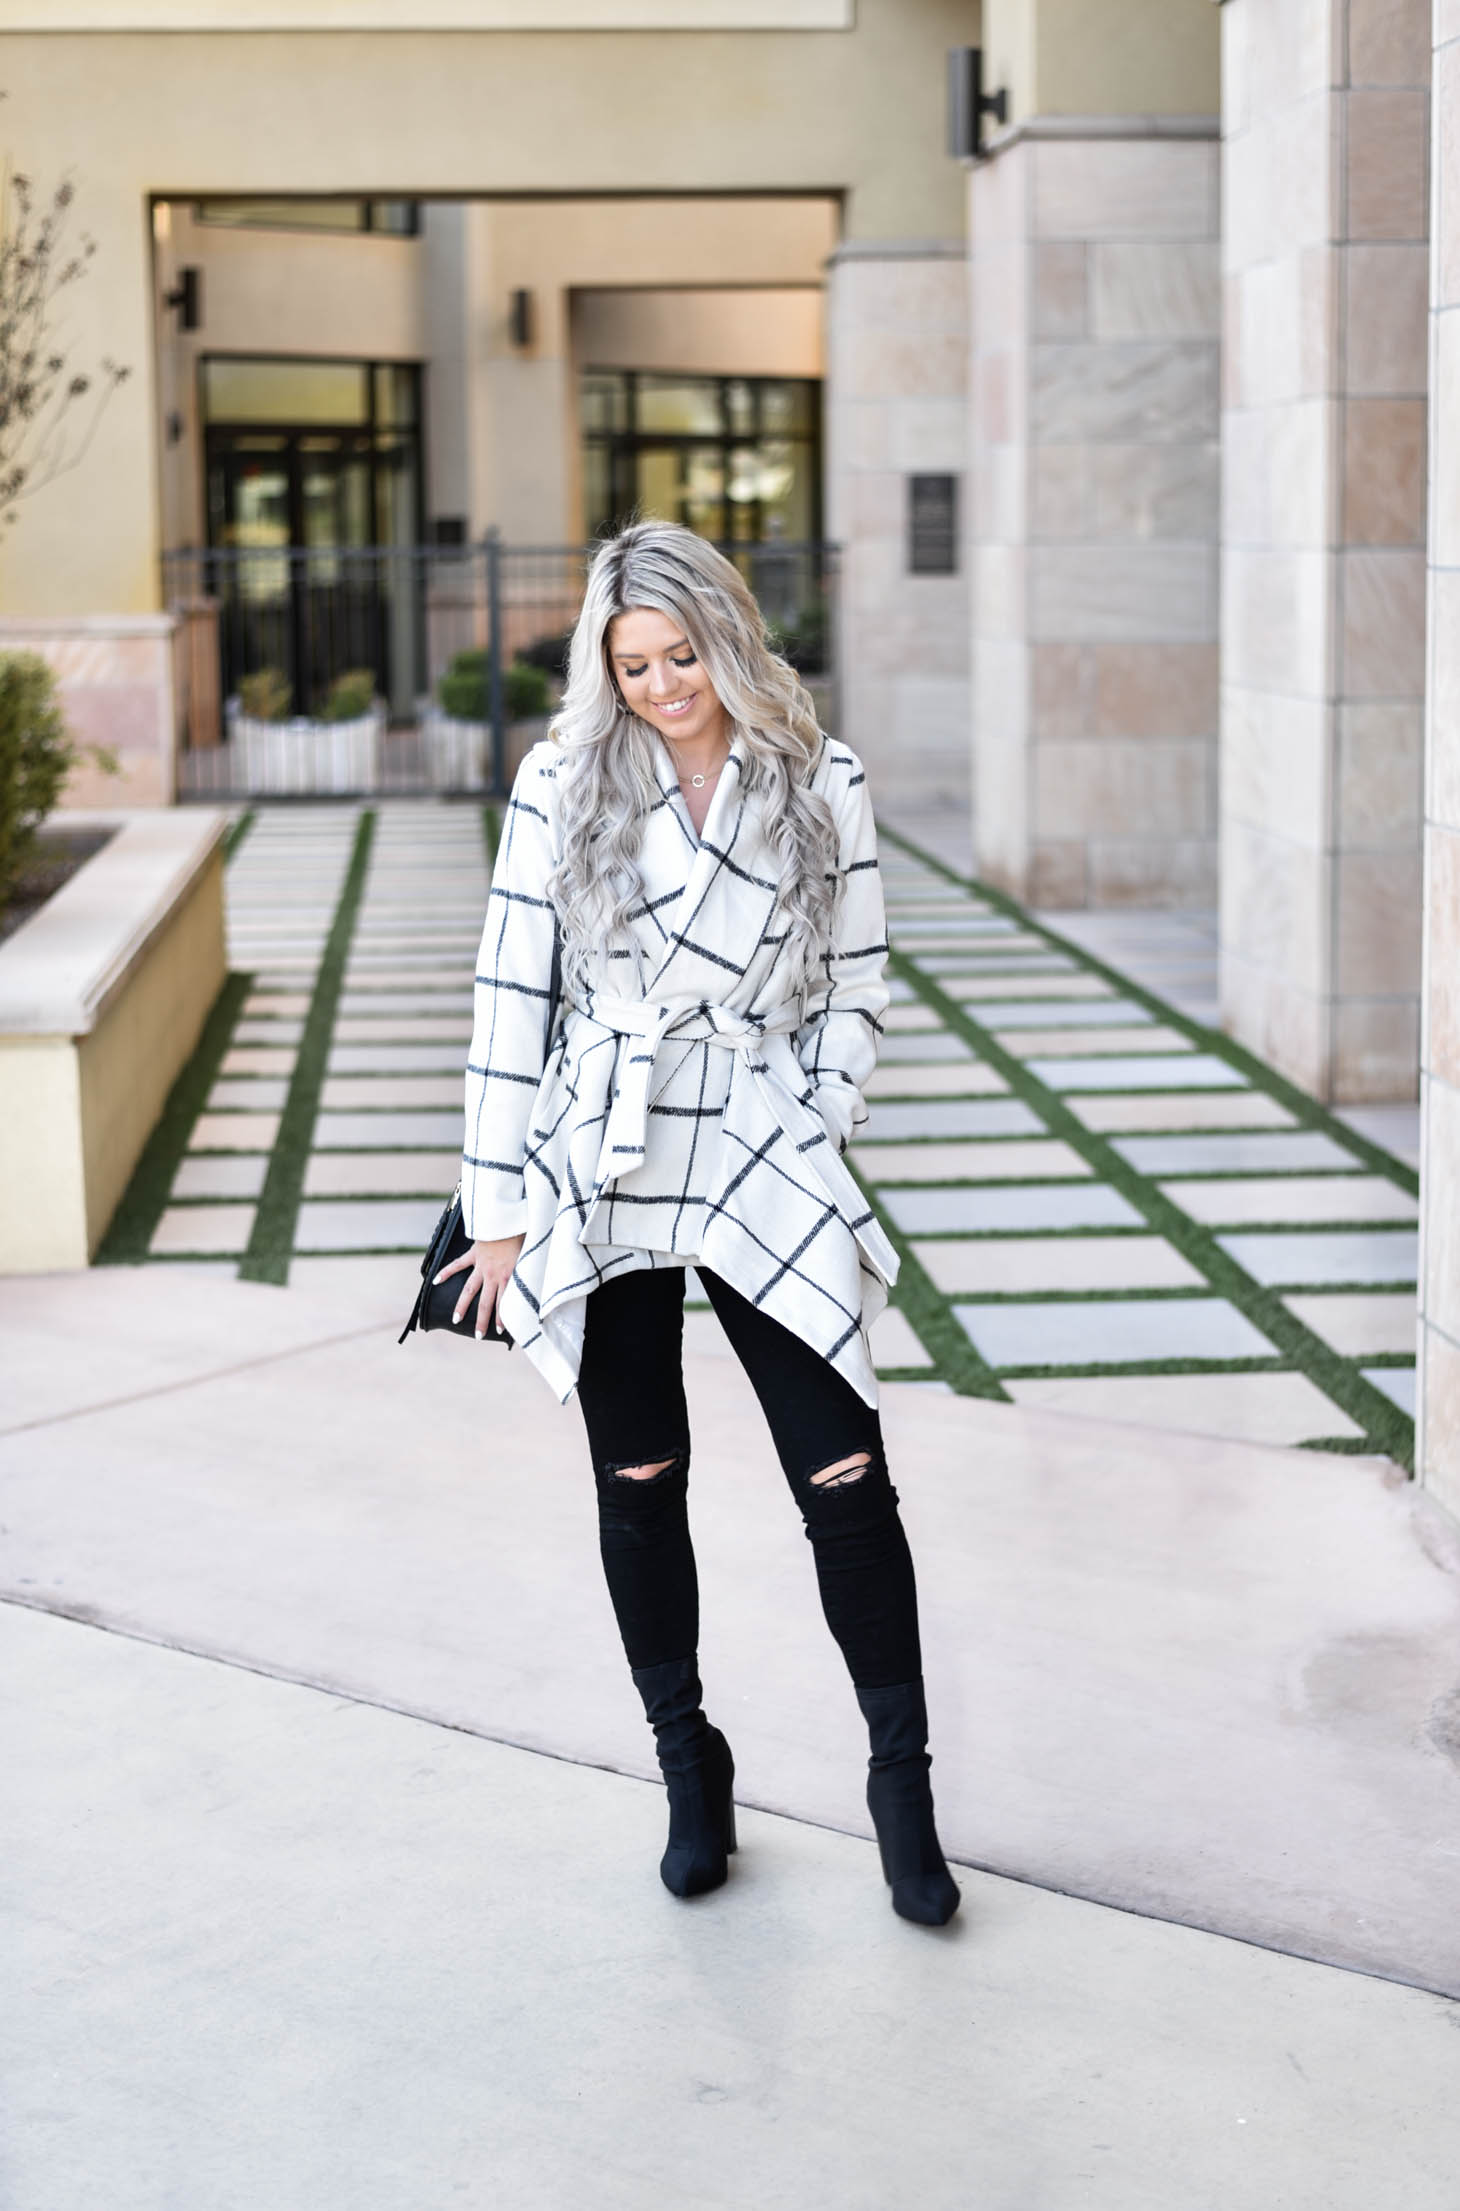 Erin Elizabeth of Wink and a Twirl shares the must have coat for Fall and Winter from Chicwish